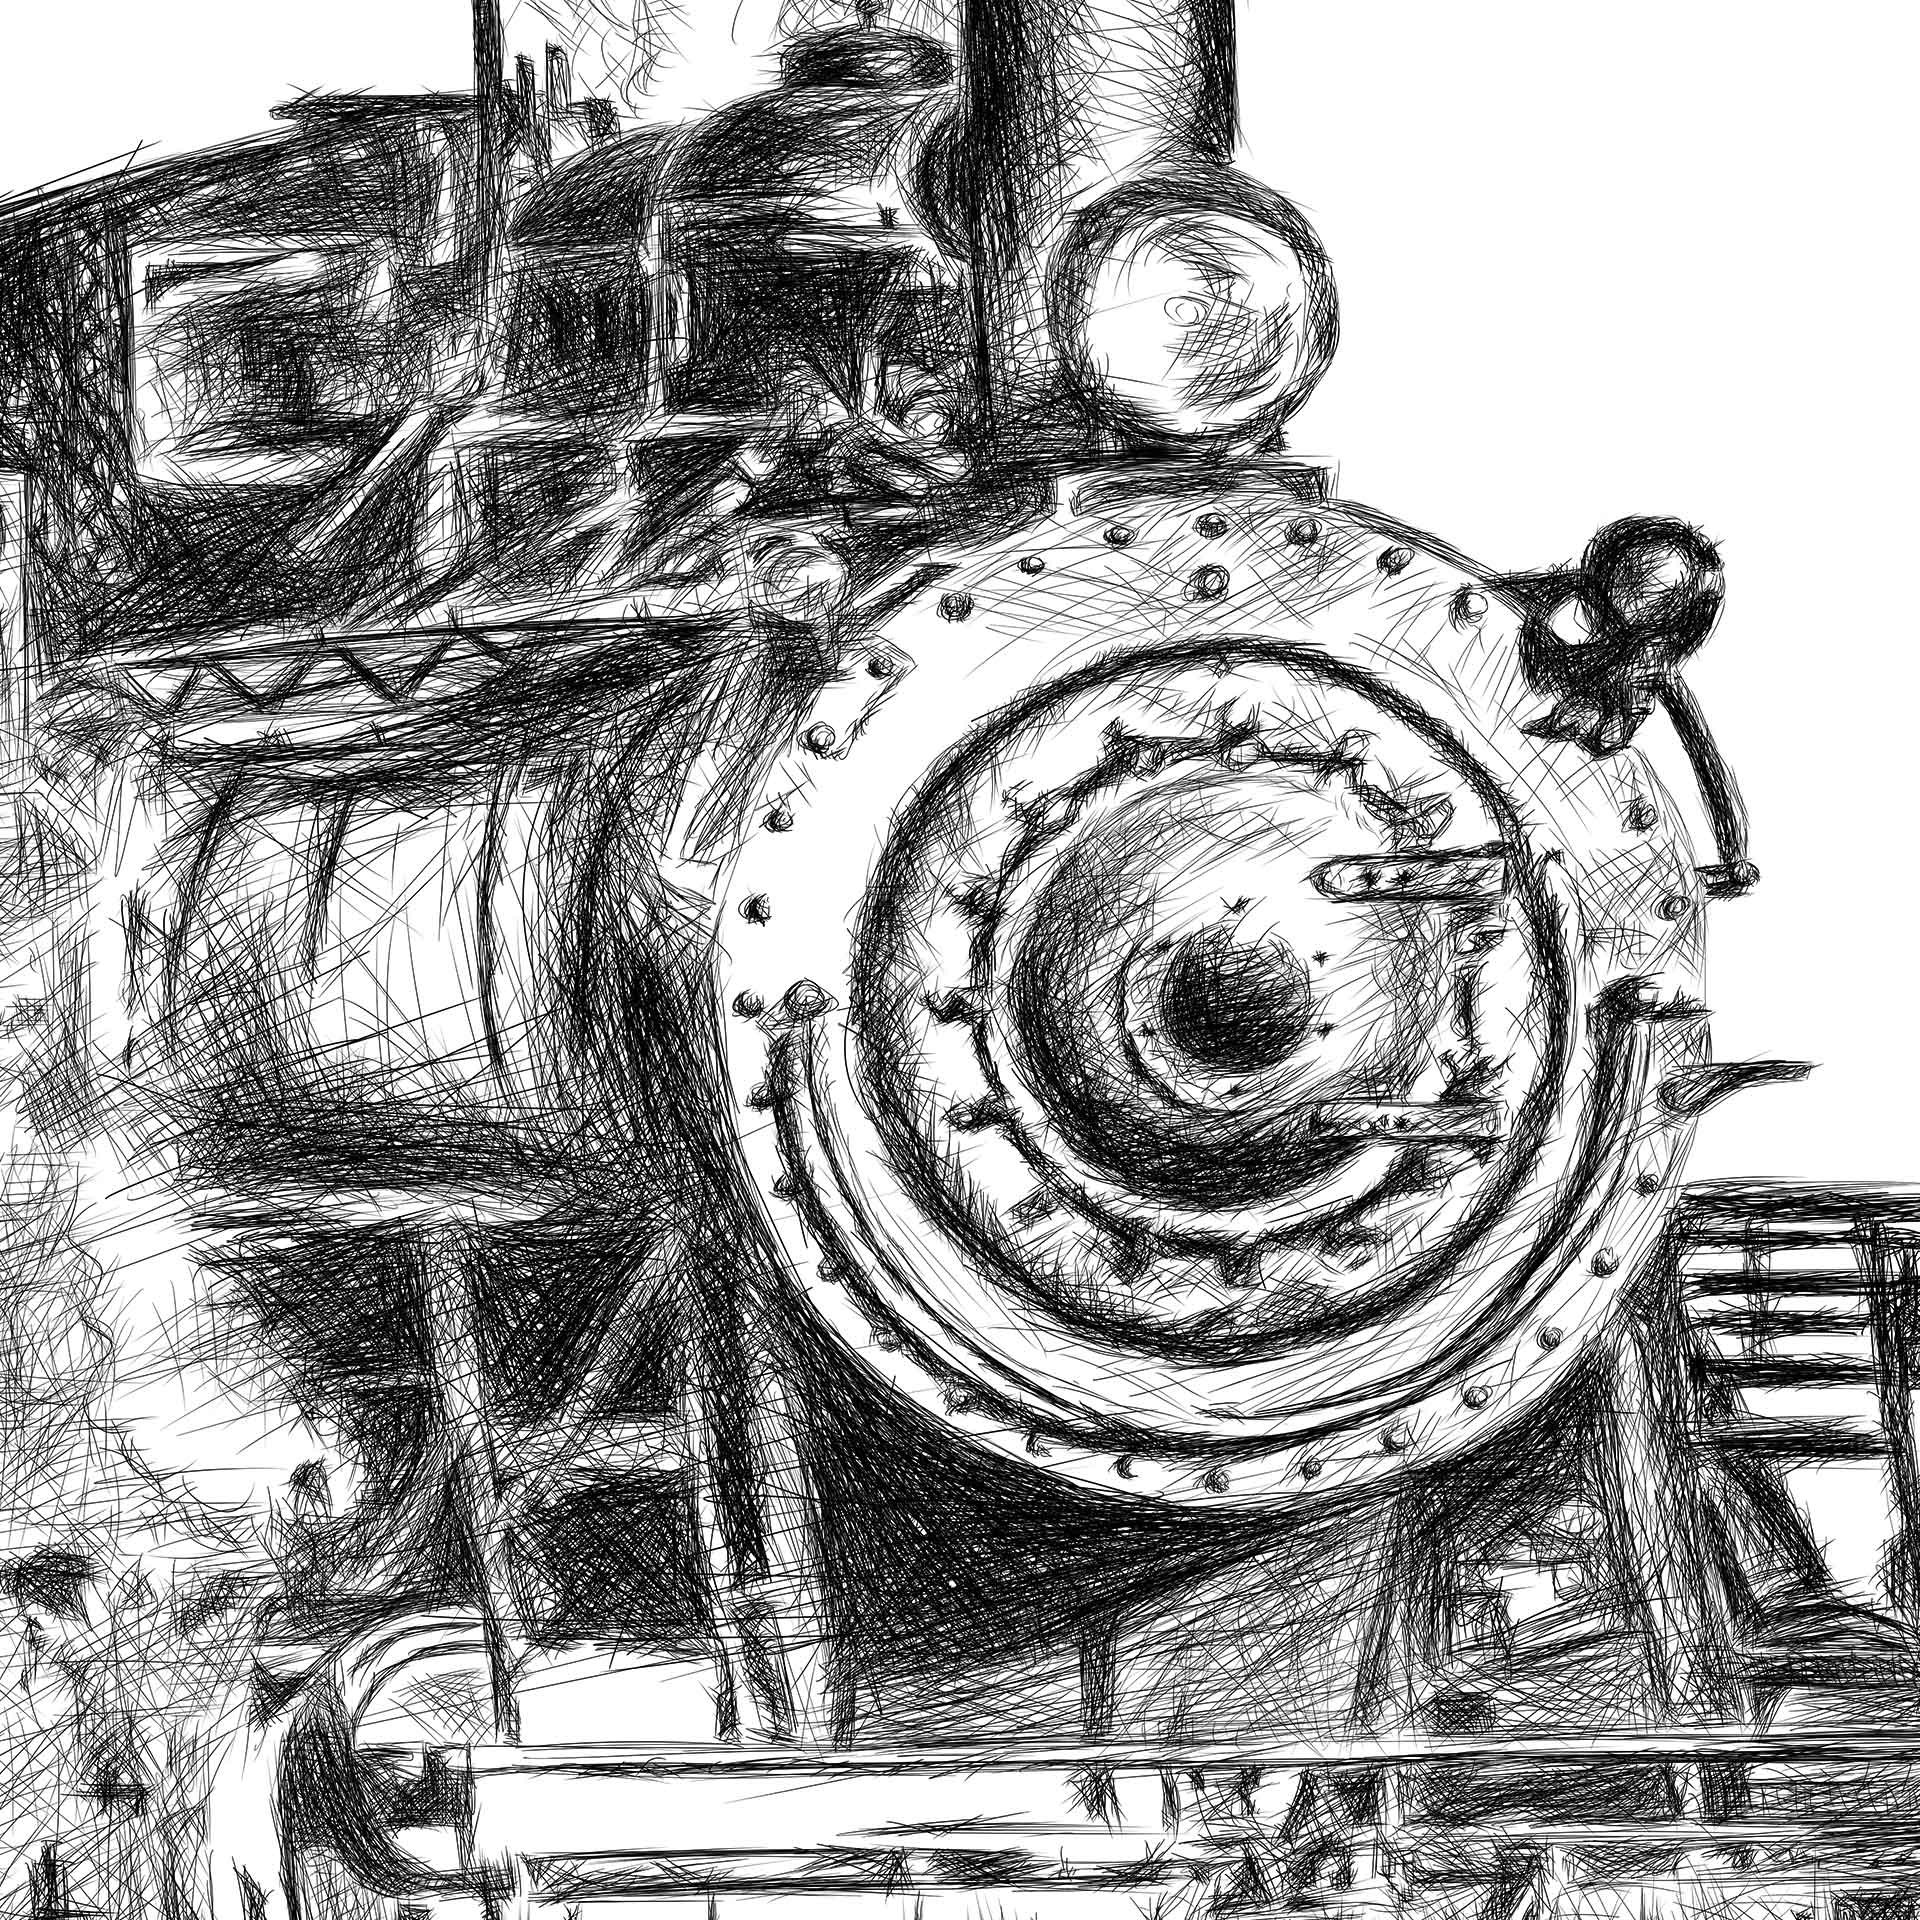 Orient Express train illustration digital pencil lines איור קטר רכבת עיפרון דיגיטלי closeup1